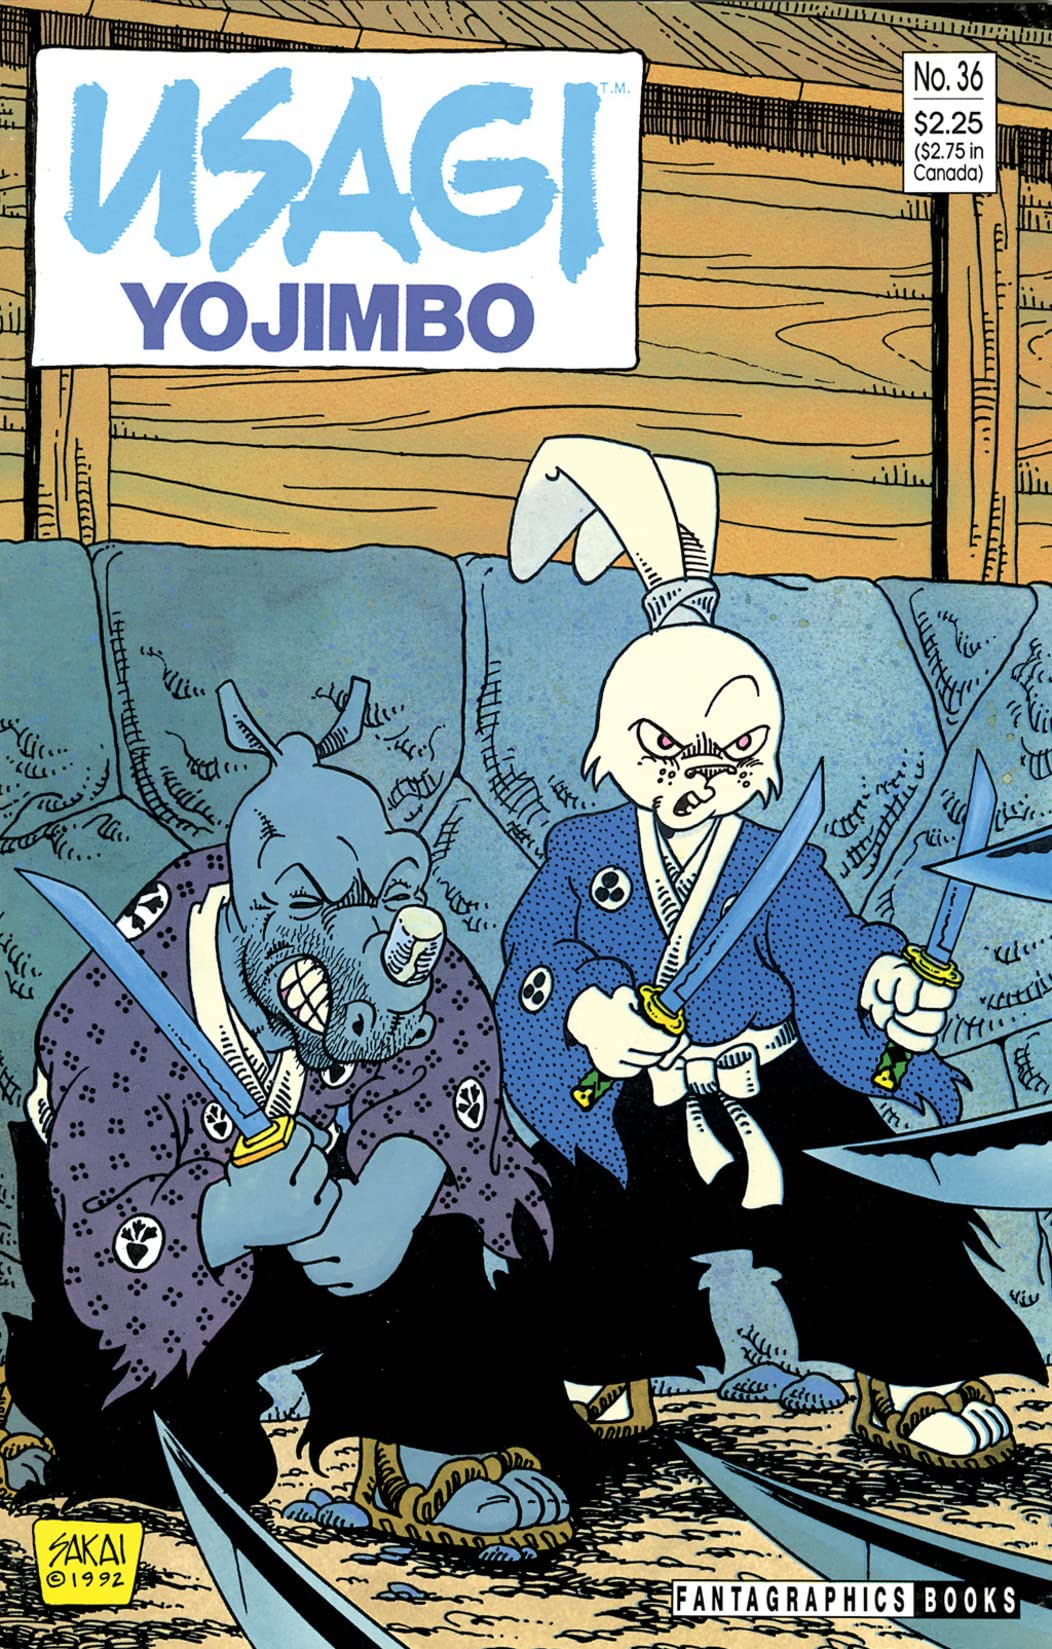 Usagi Yojimbo Vol. 1 #36